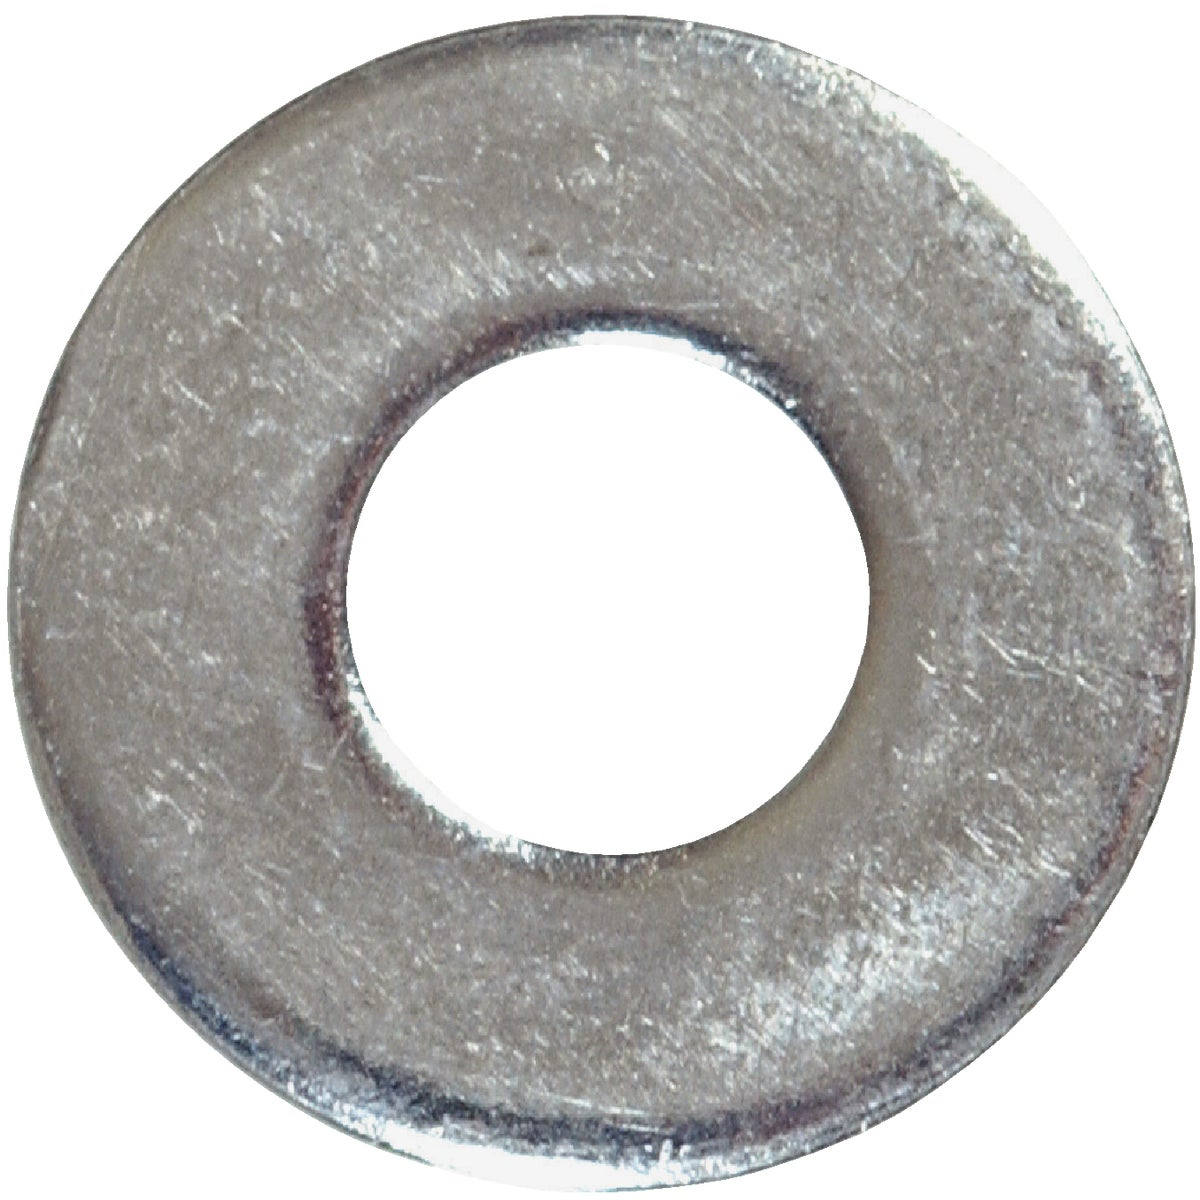 "5LB 3/4"" USS FLT WASHER - 270027 by Hillman Fastener"